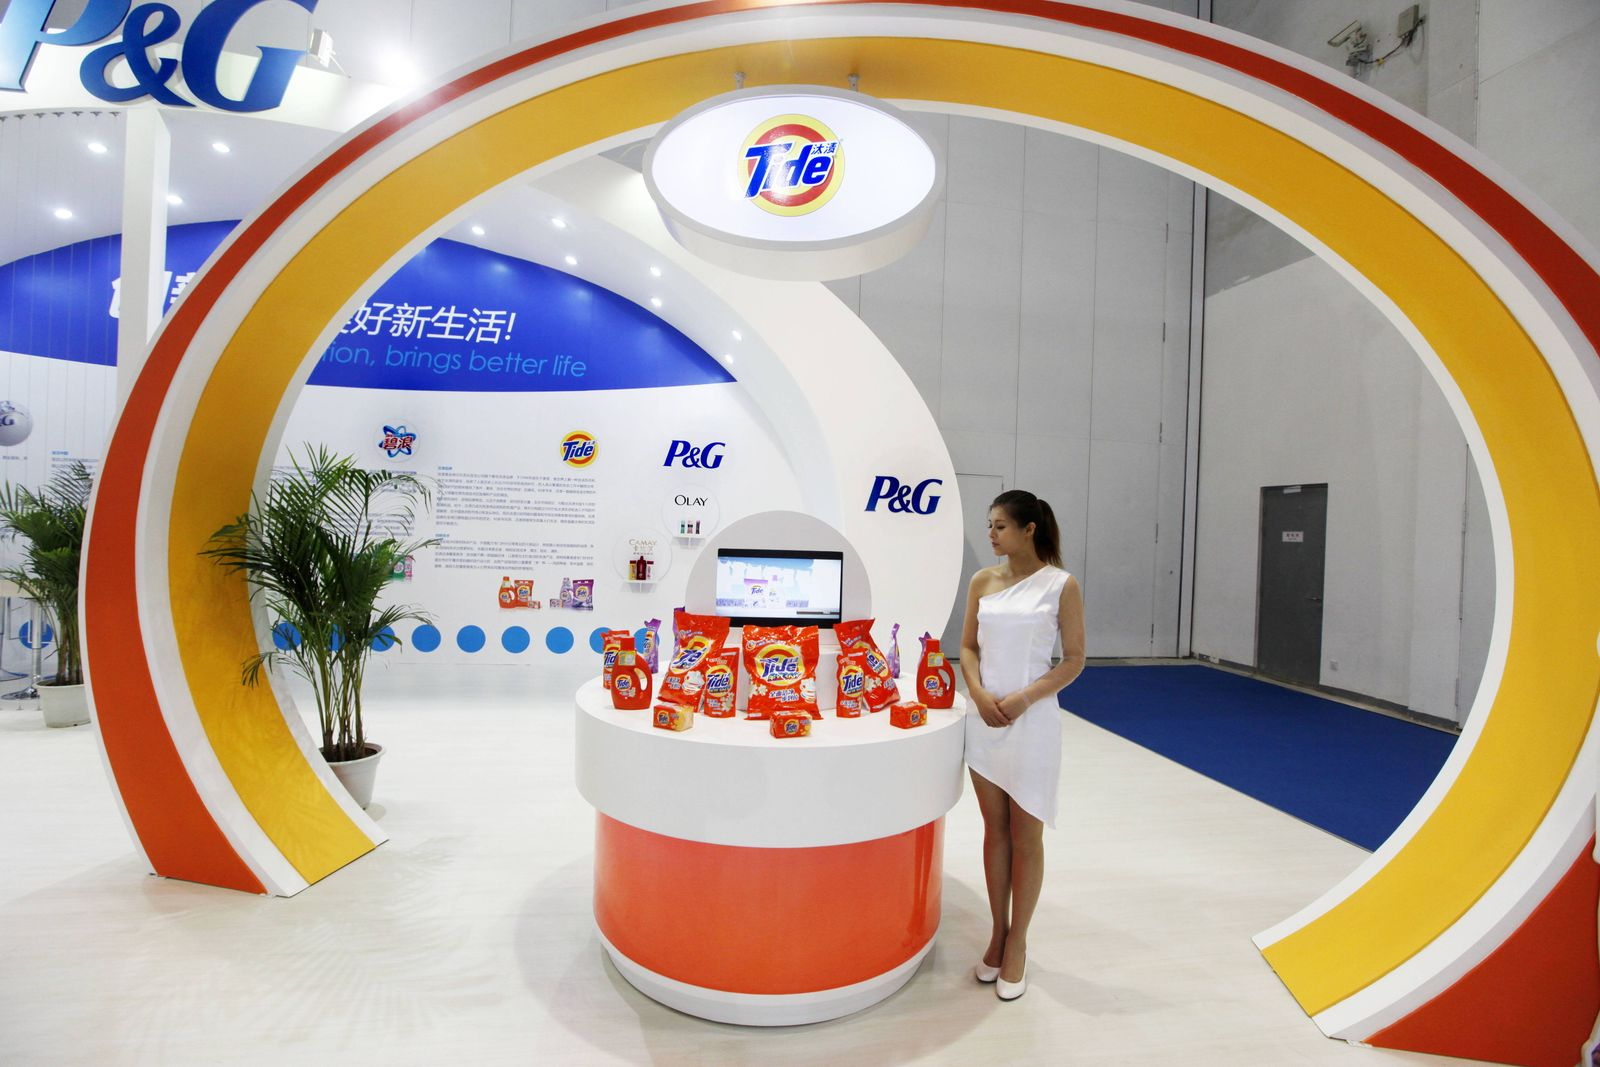 P&G during an exhibition in Beijing